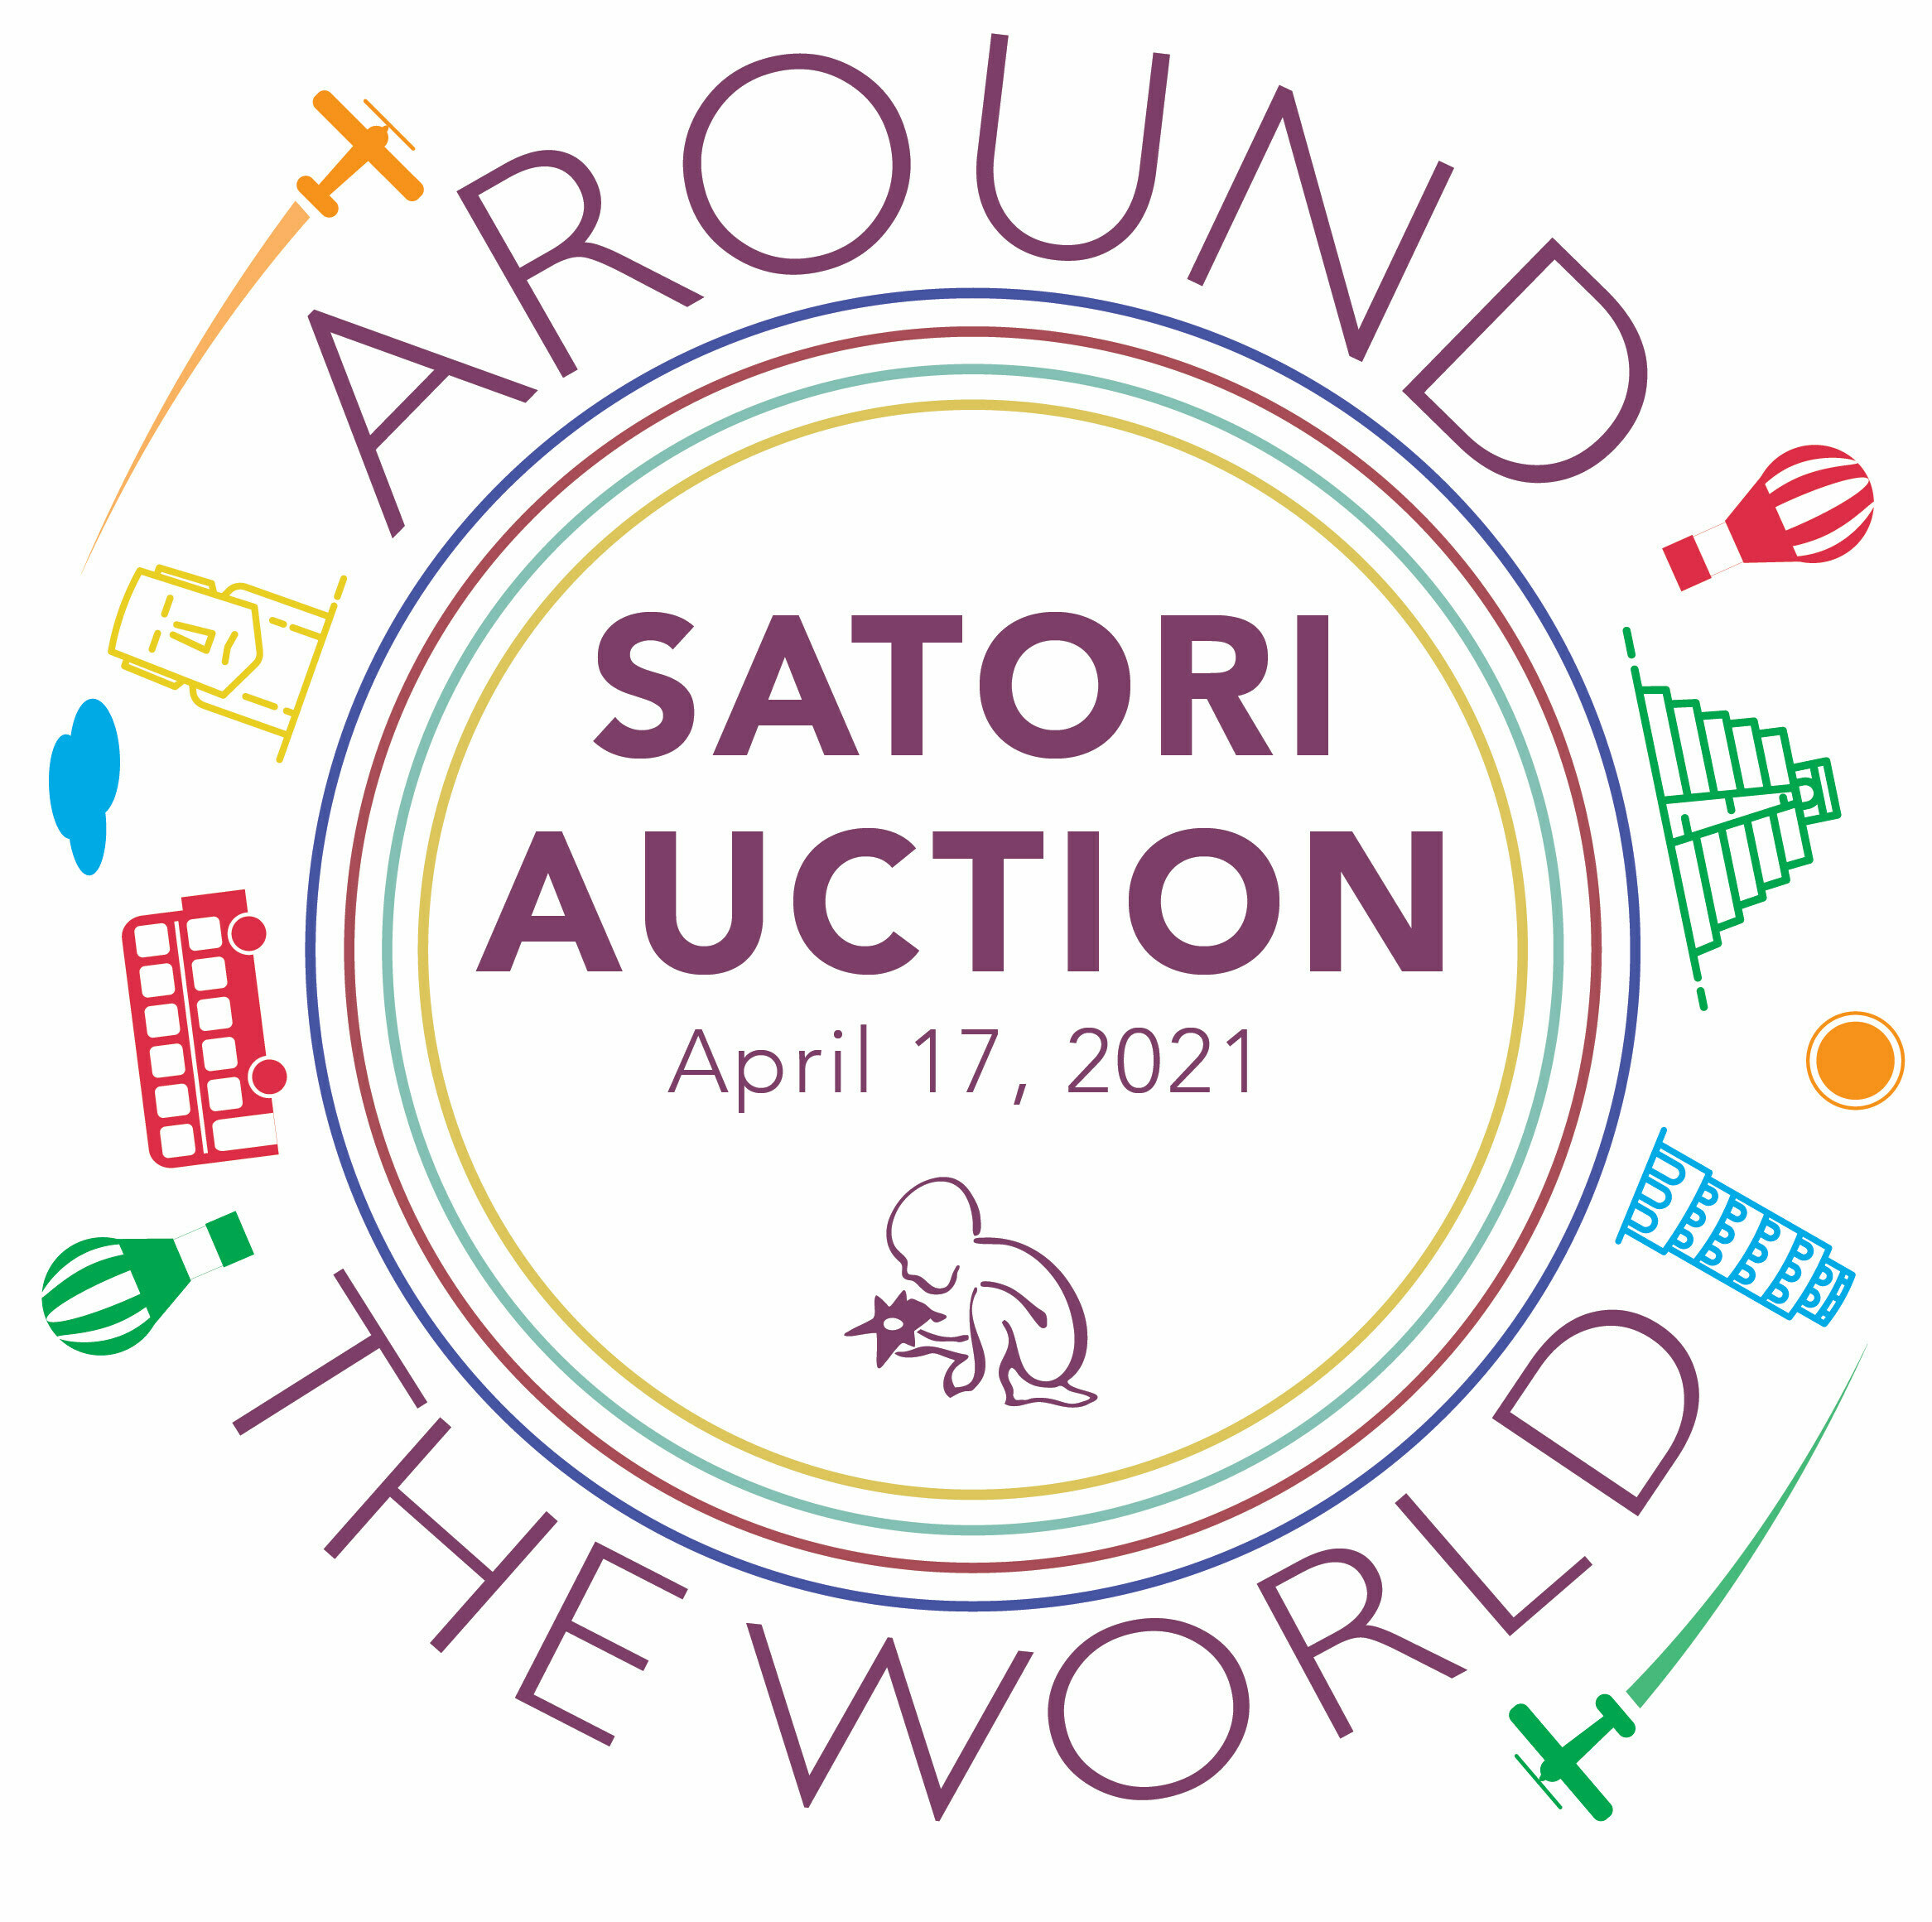 Satori Auction